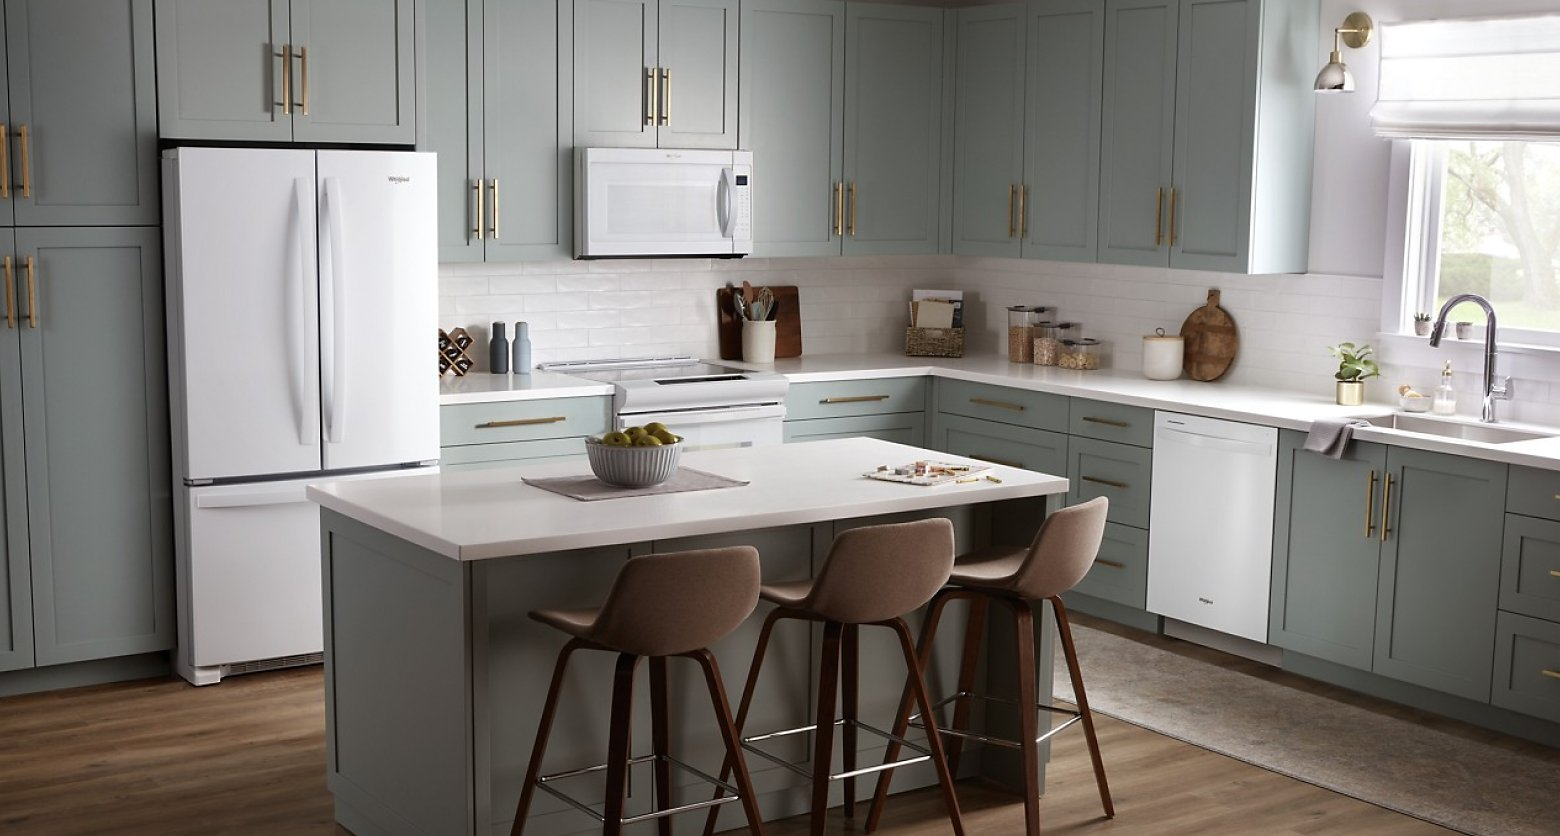 Gray kitchen featuring Whirlpool®  appliances in white